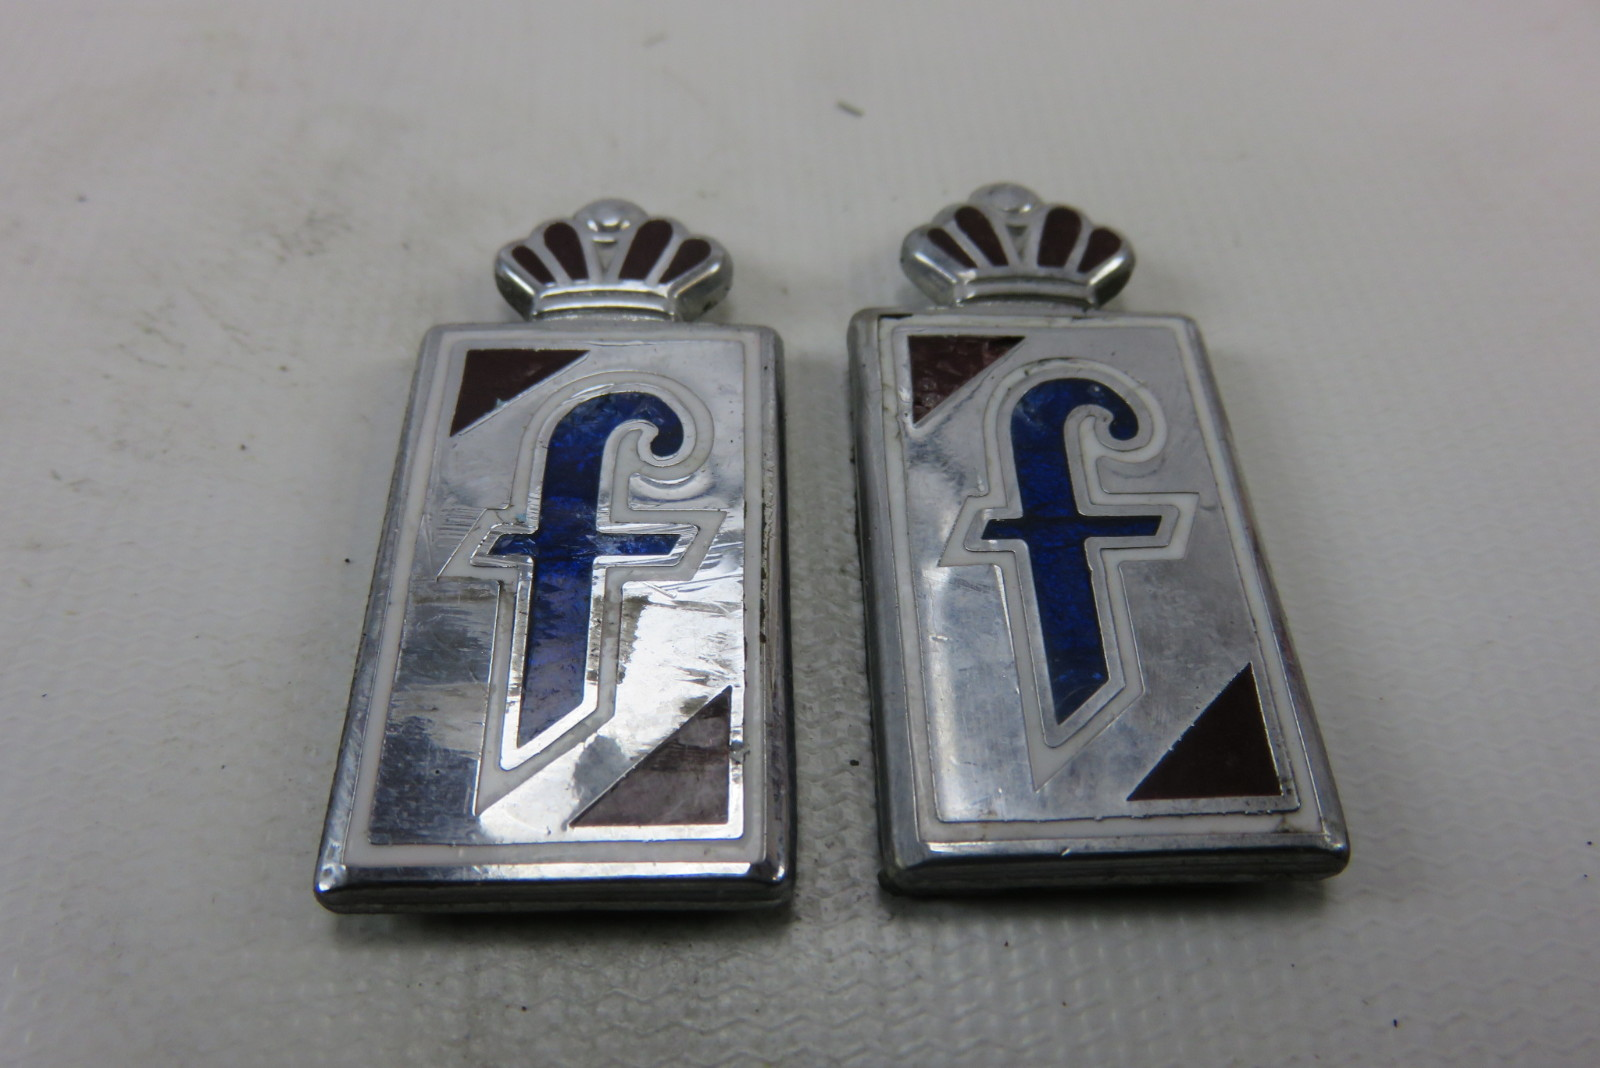 95 Ferrari 456 GT 456GT badge emblem set quarter panel ...